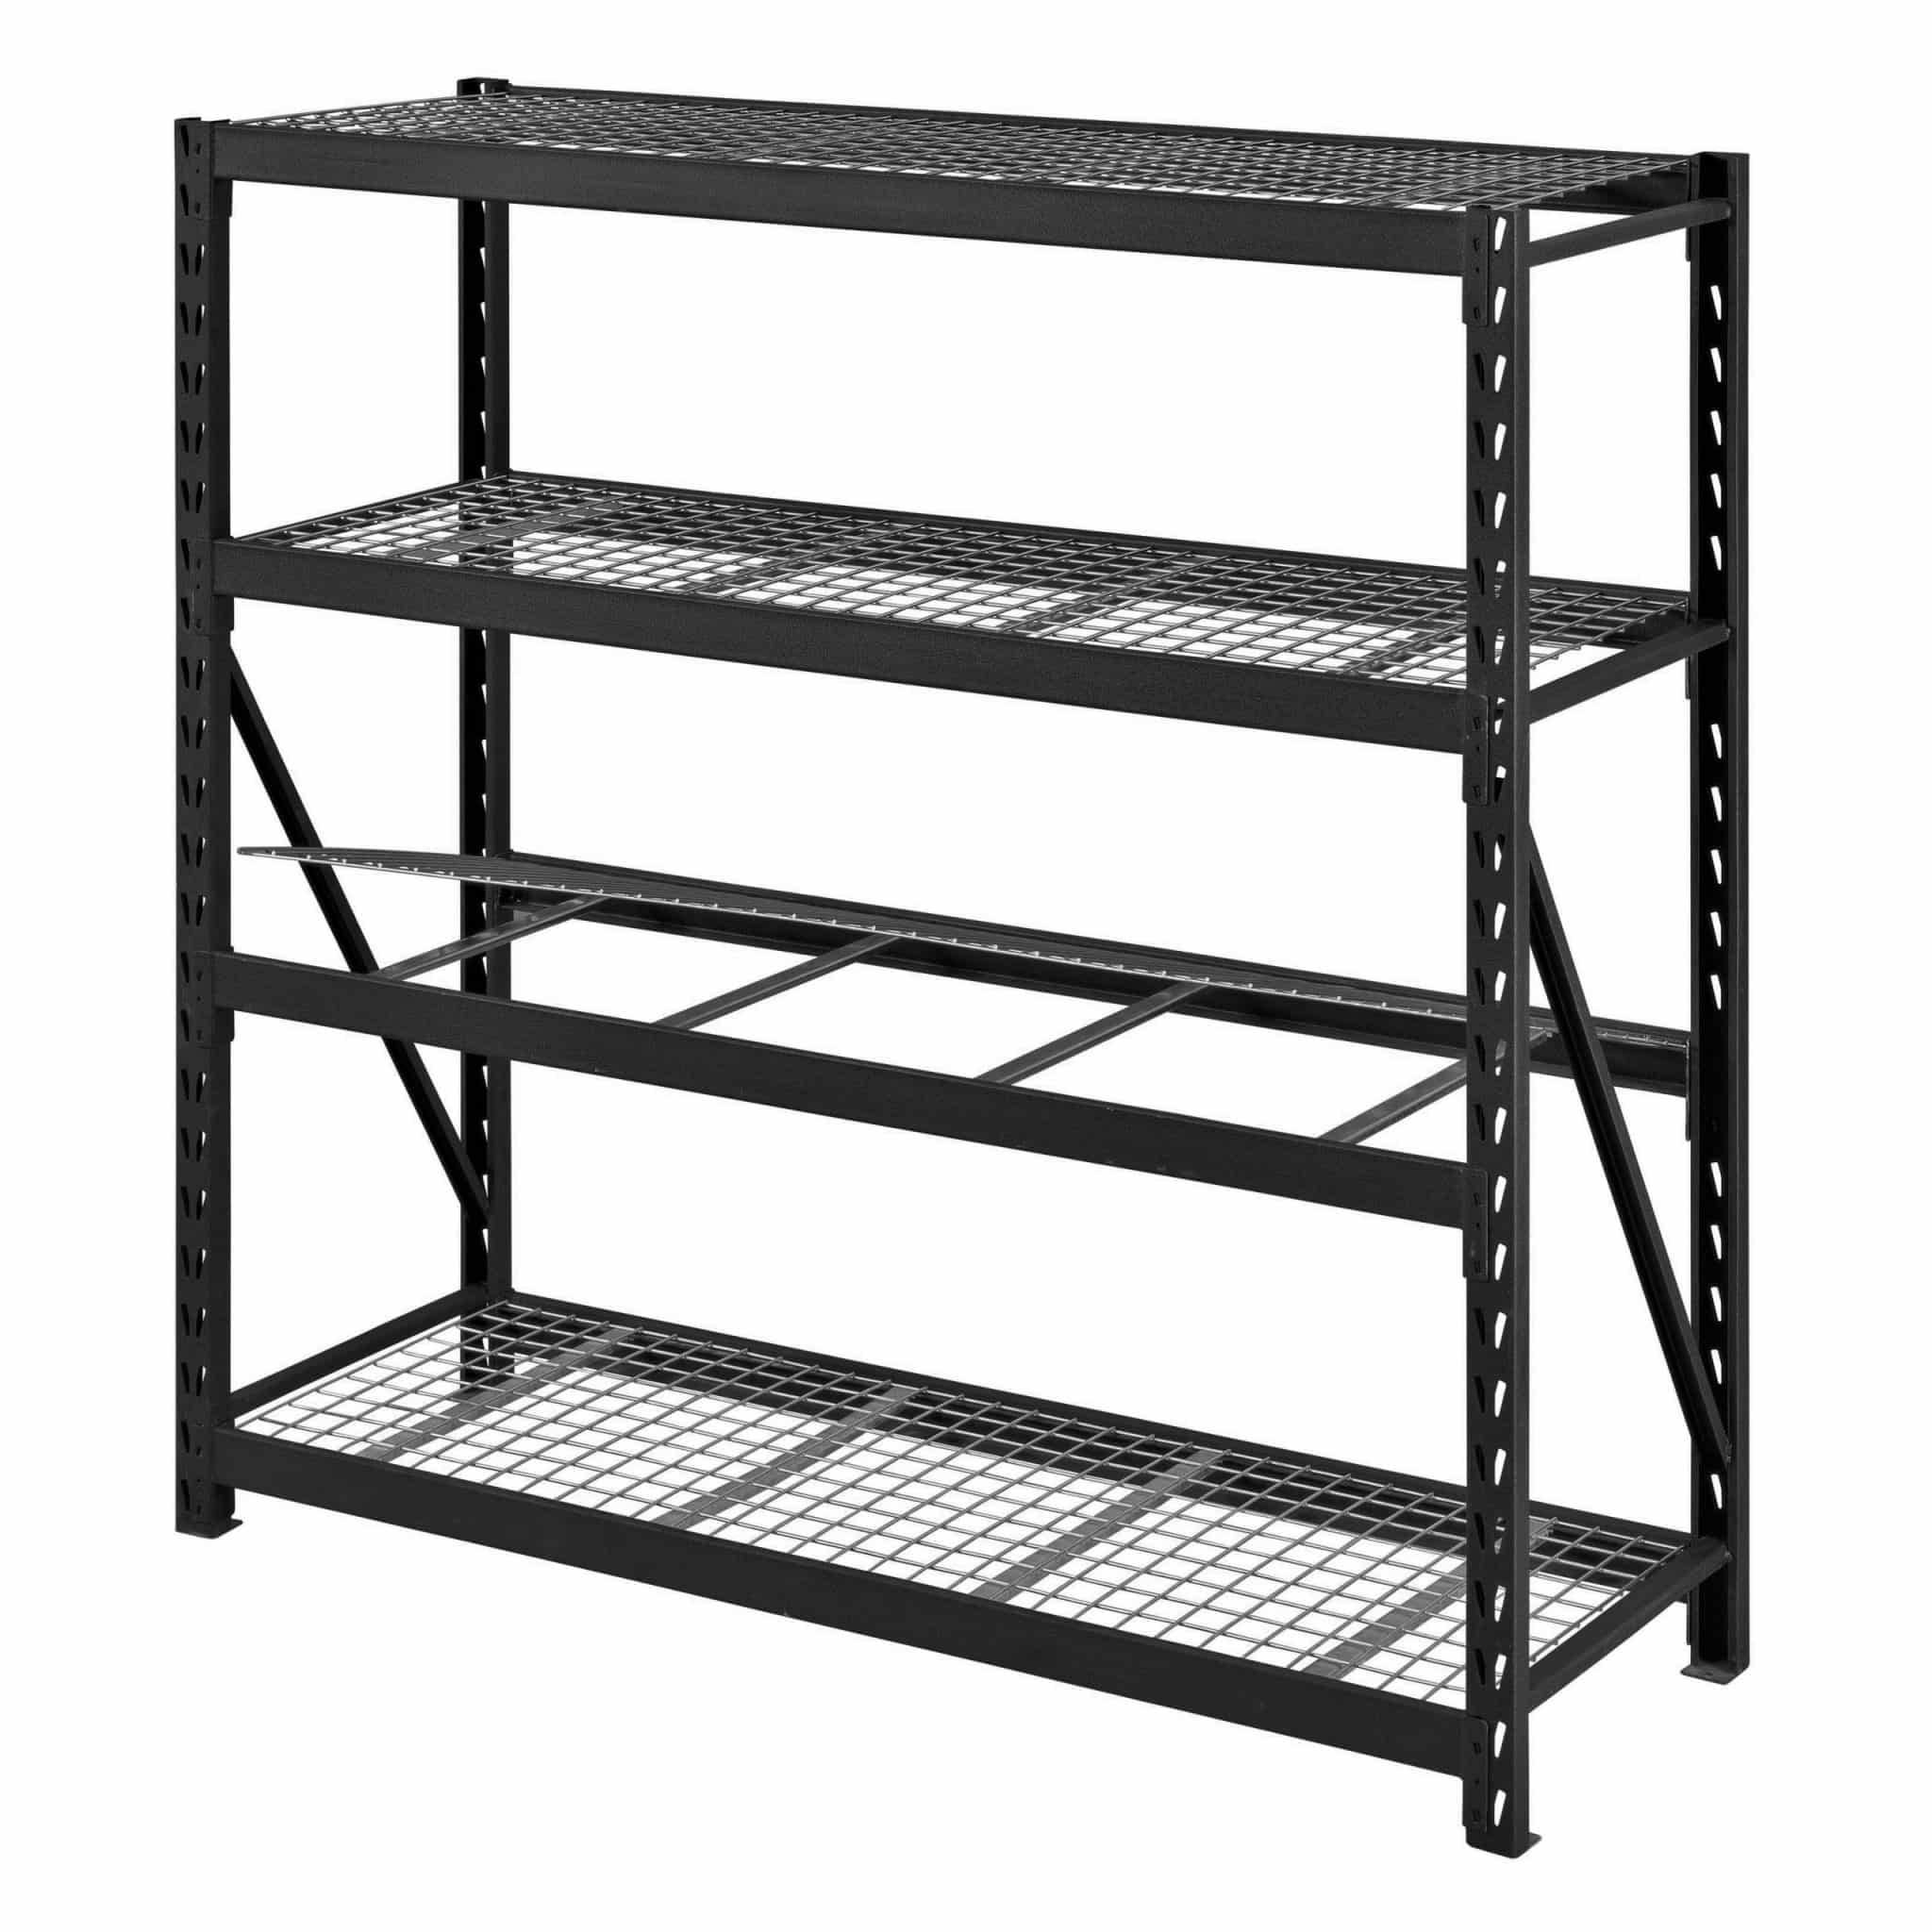 Whalen Industrial Rack at Costco